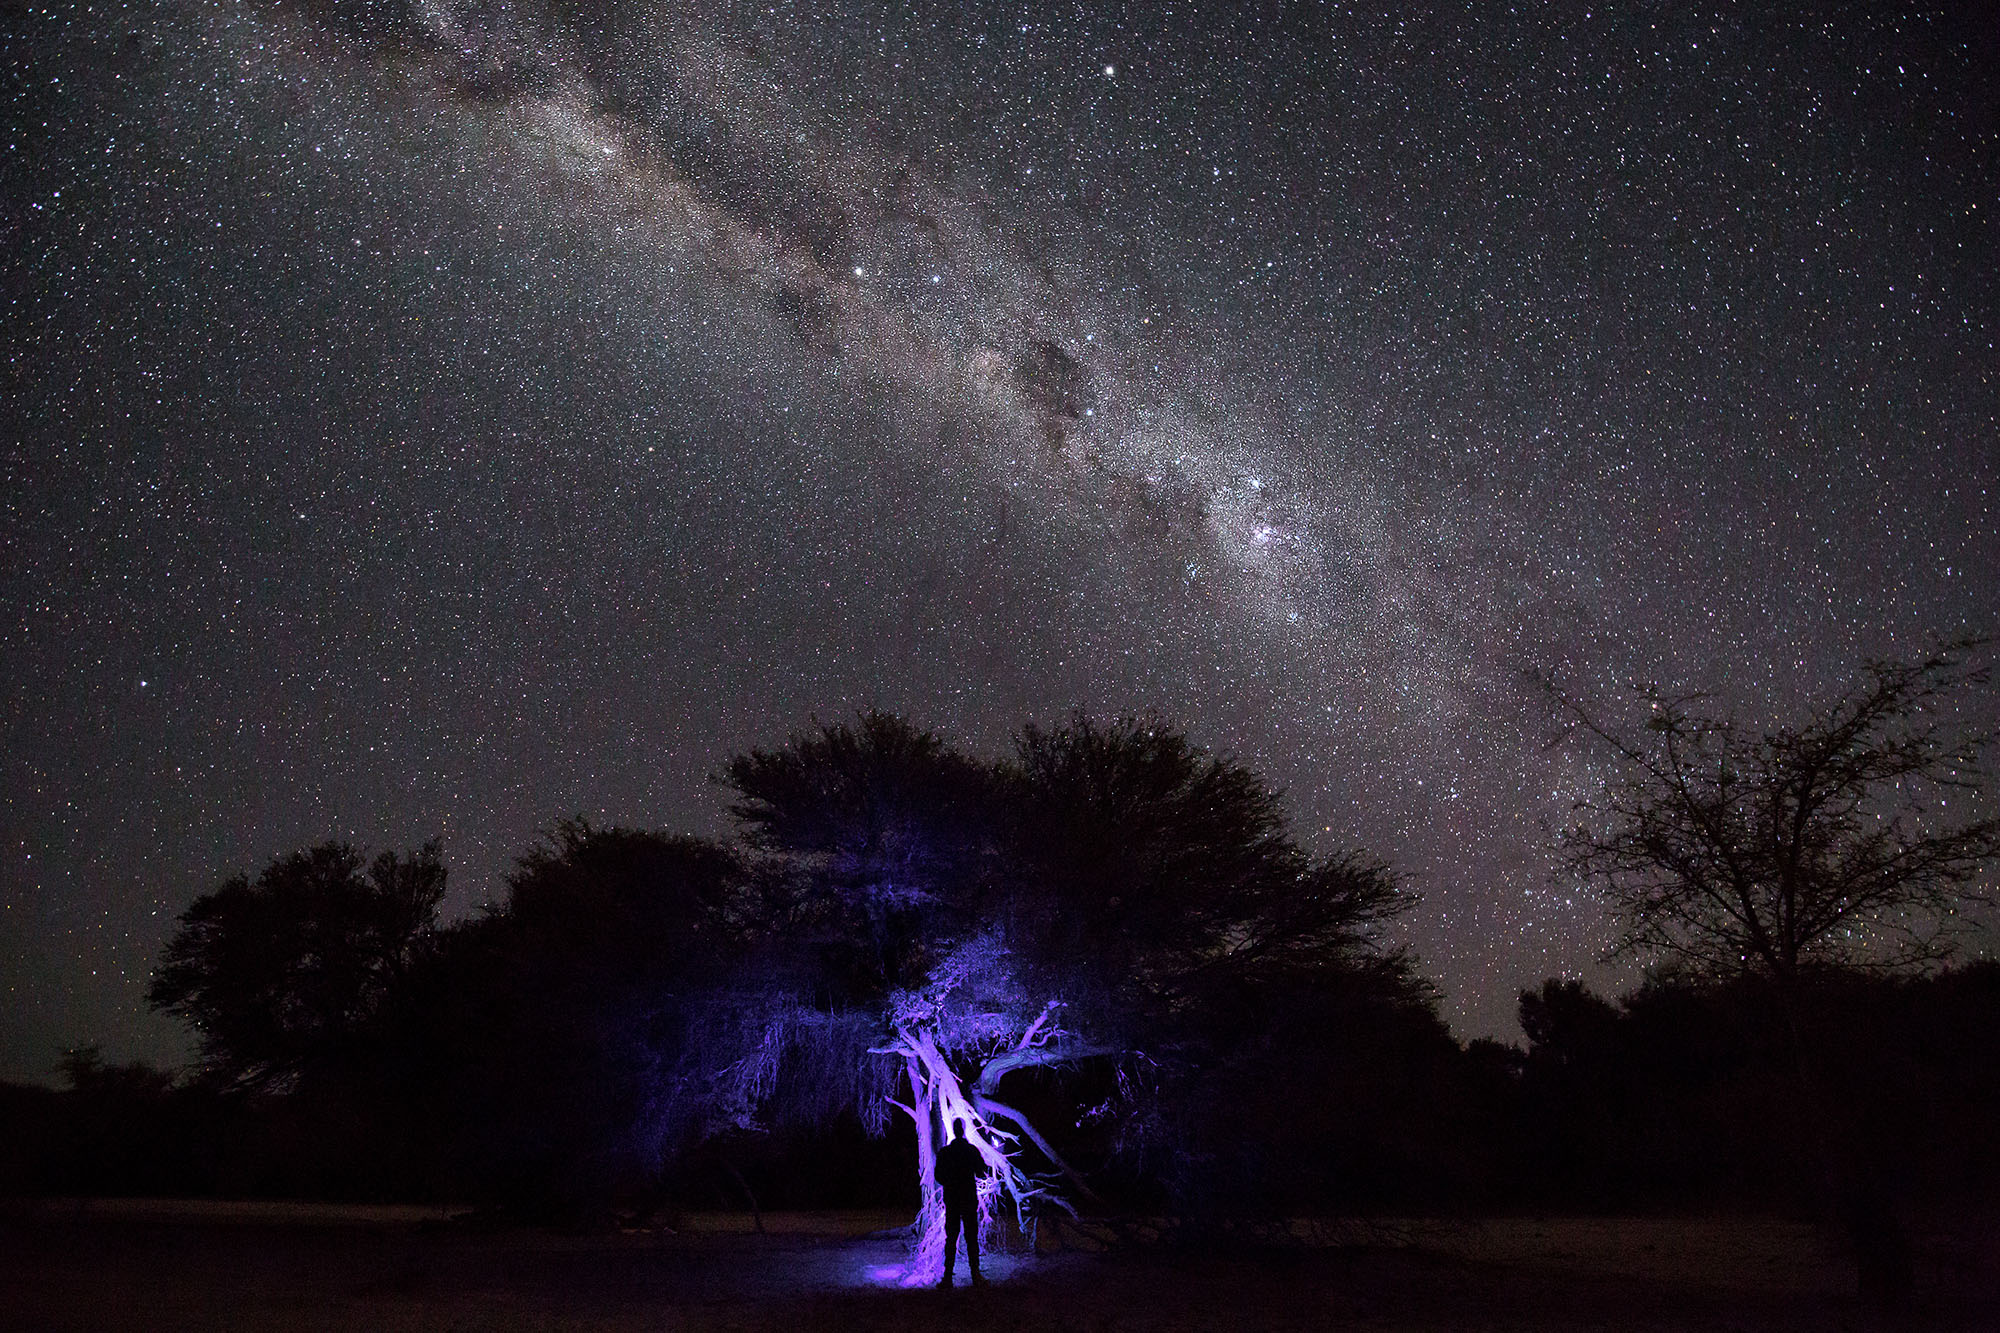 Above:  Searching for fluorescing scorpions with UV light in the Kuiseb River - an ephemeral river that meanders through parts of the Namib Desert.